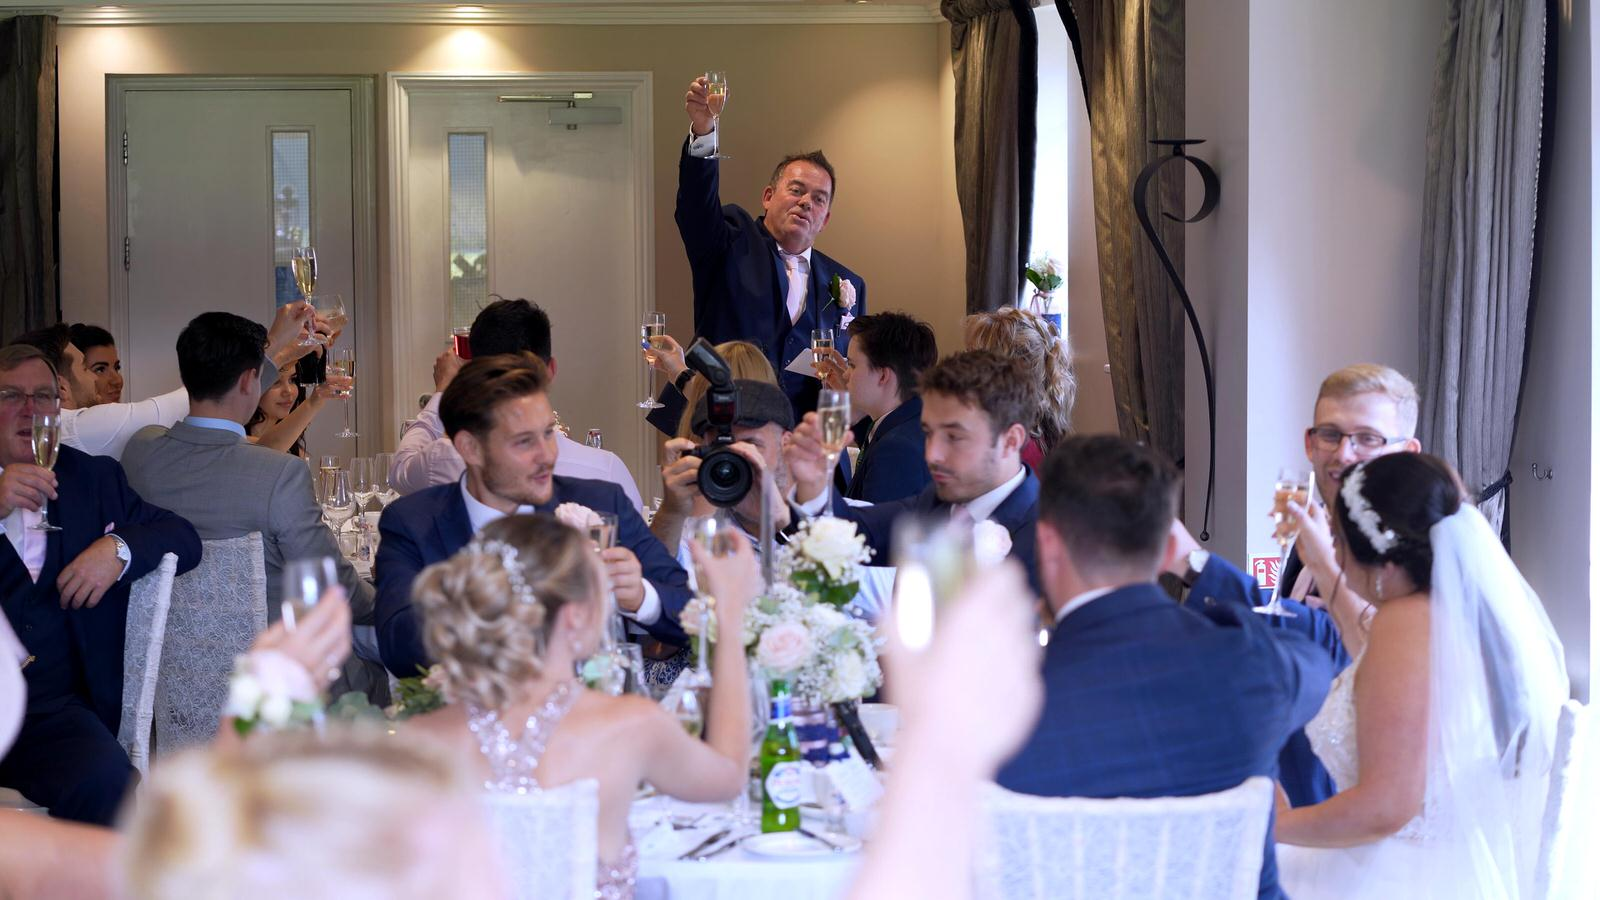 father of the bride raises a toast during speeches